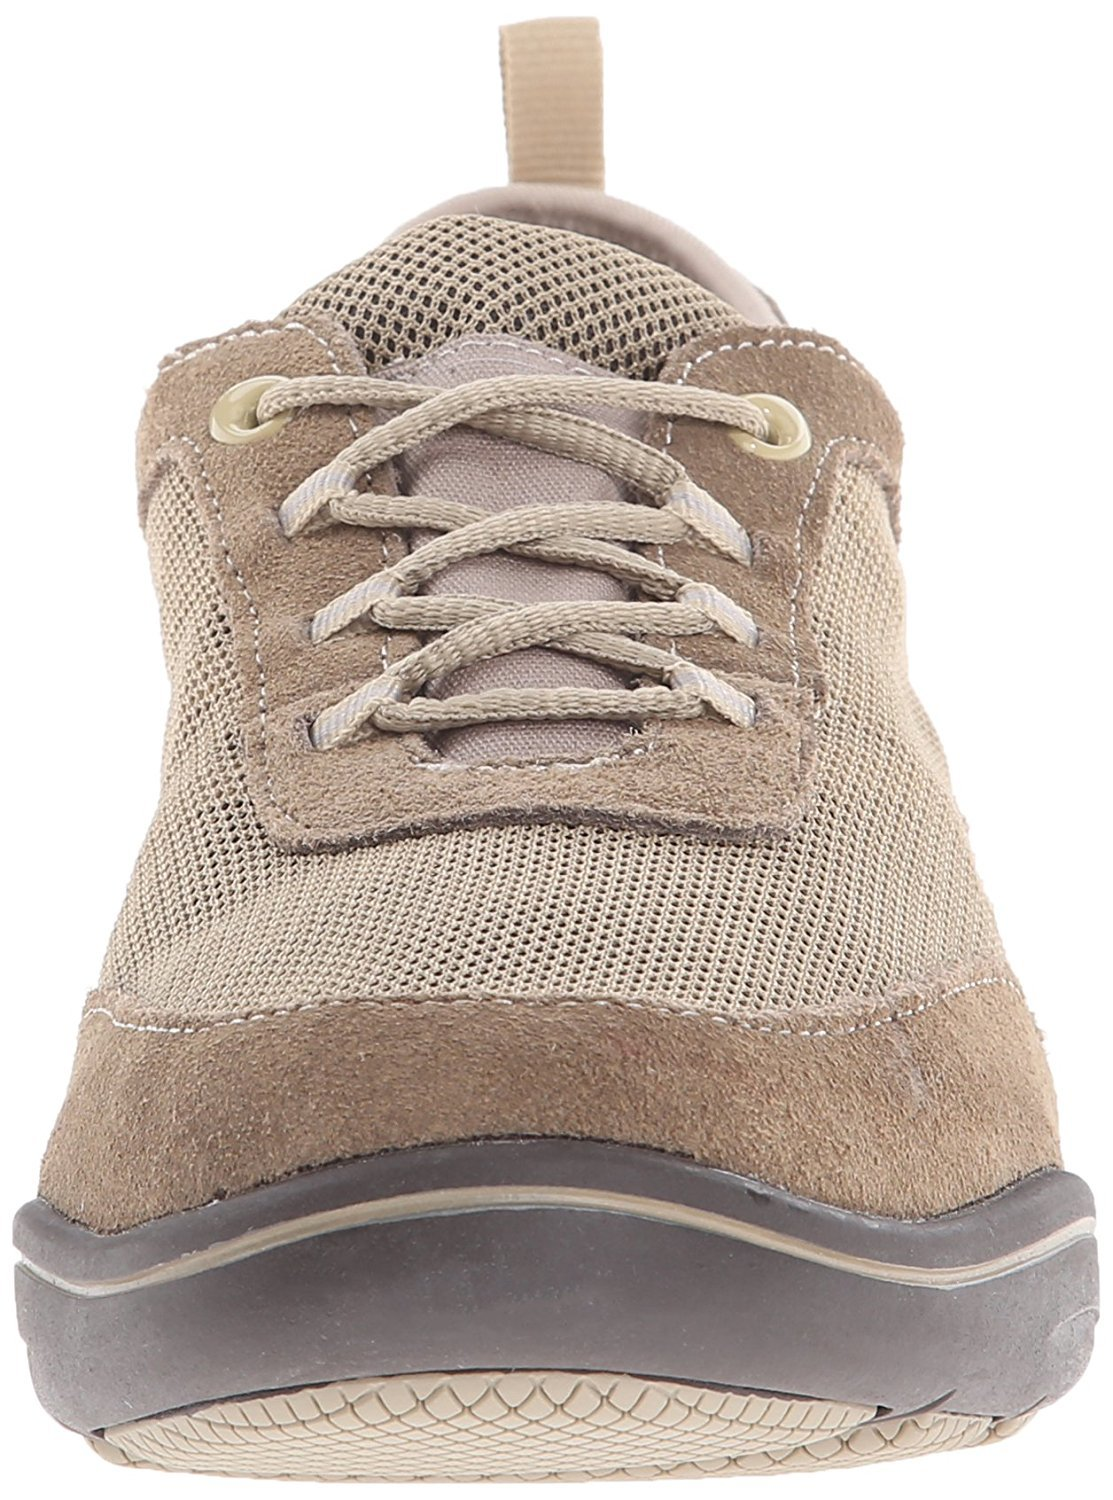 Grasshoppers Women's Explore Lace Fashion Sneaker,Taupe,6 N US